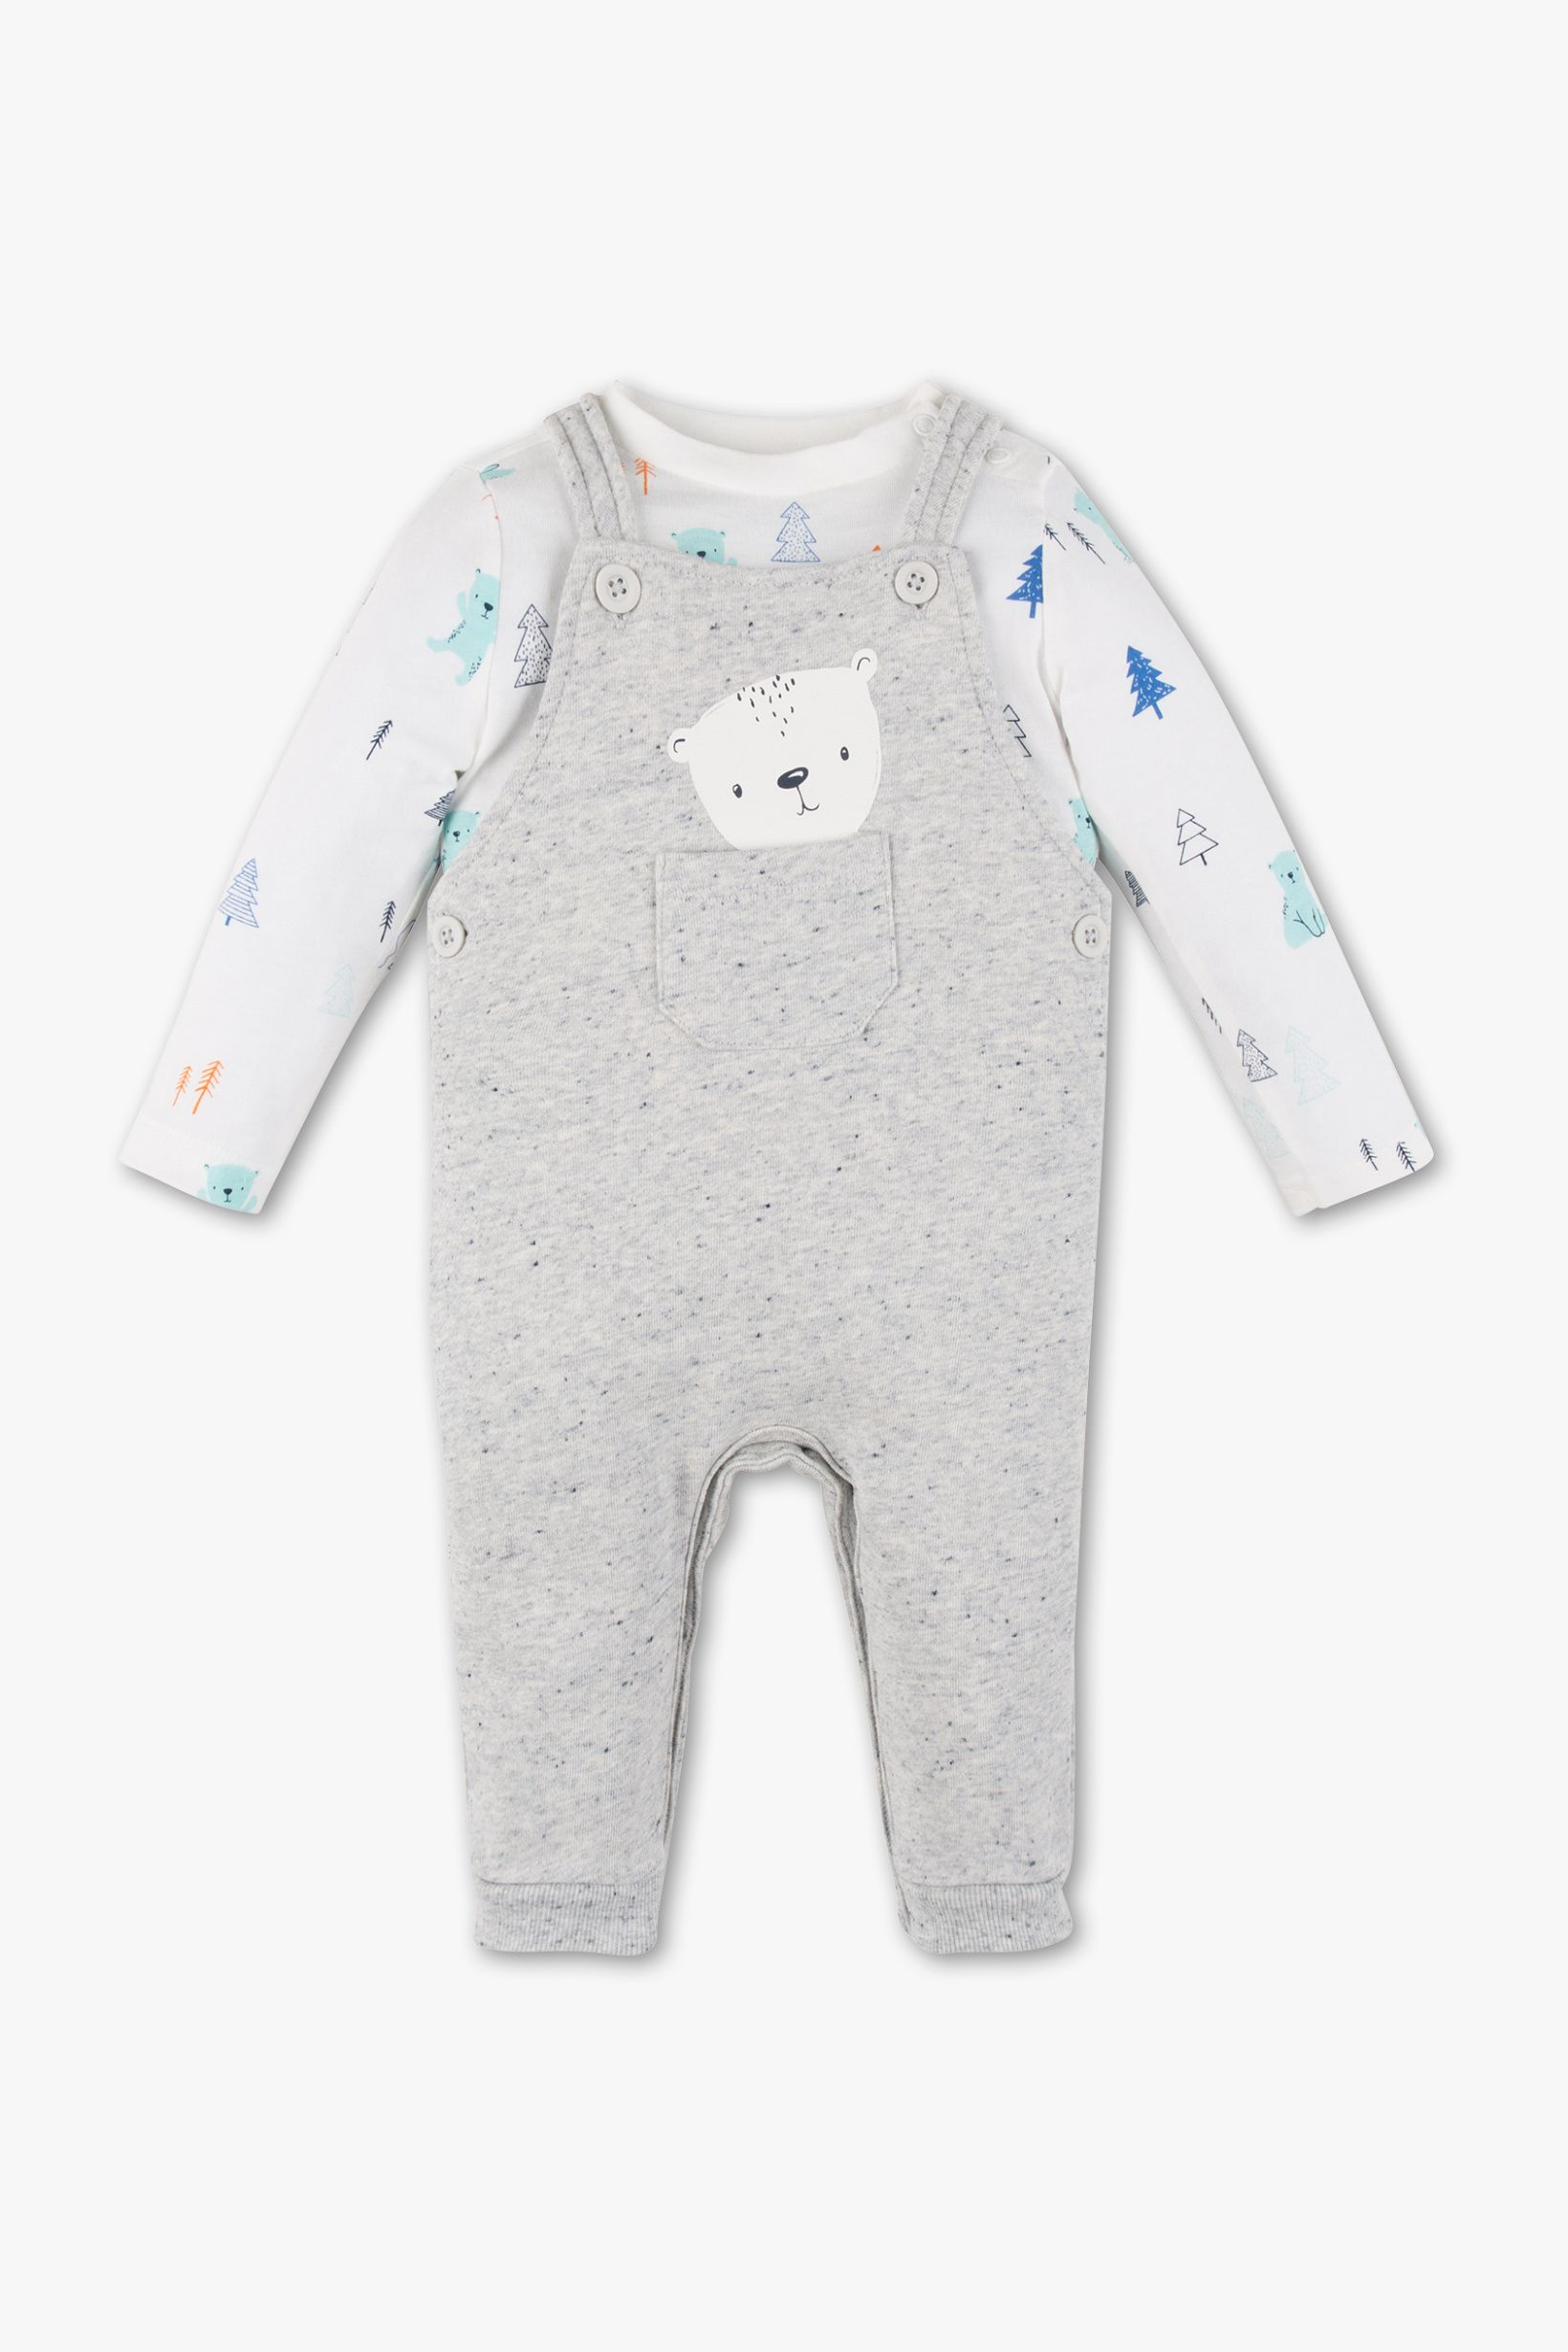 Baby Club Baby Outfit Bio Baumwolle 2 Teilig Baby Stuff Baby